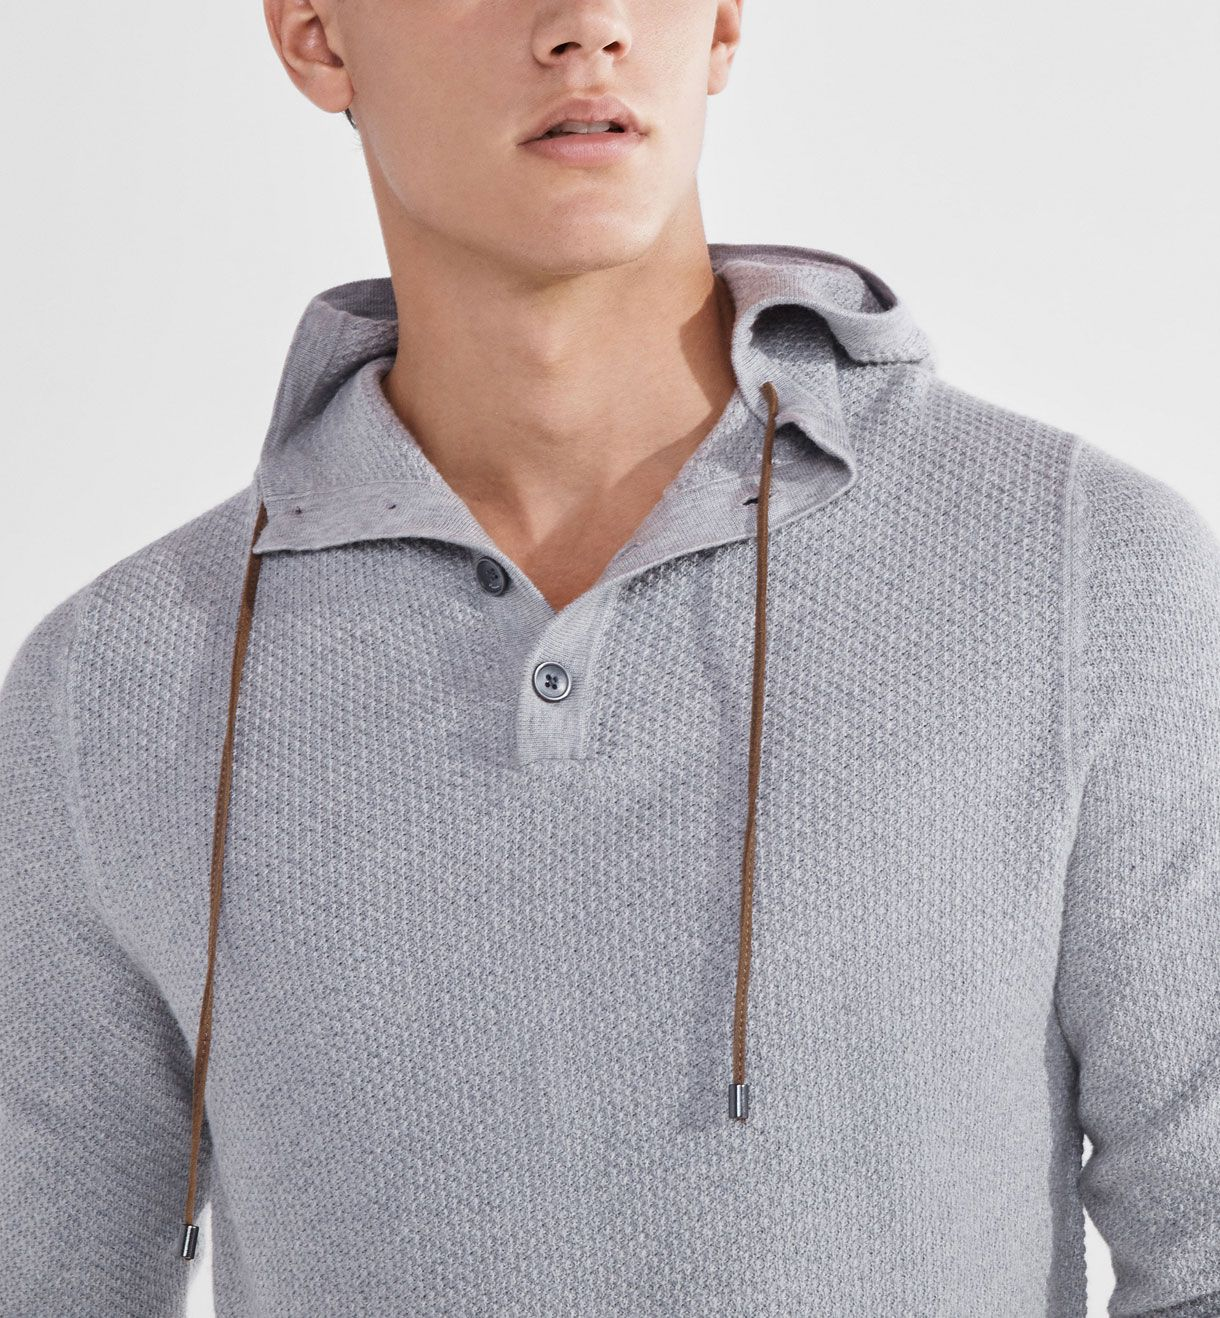 SOFT TEXTURED SWEATER WITH A CONTRASTING DETAIL, Casual shirts - MEN - Massimo Dutti